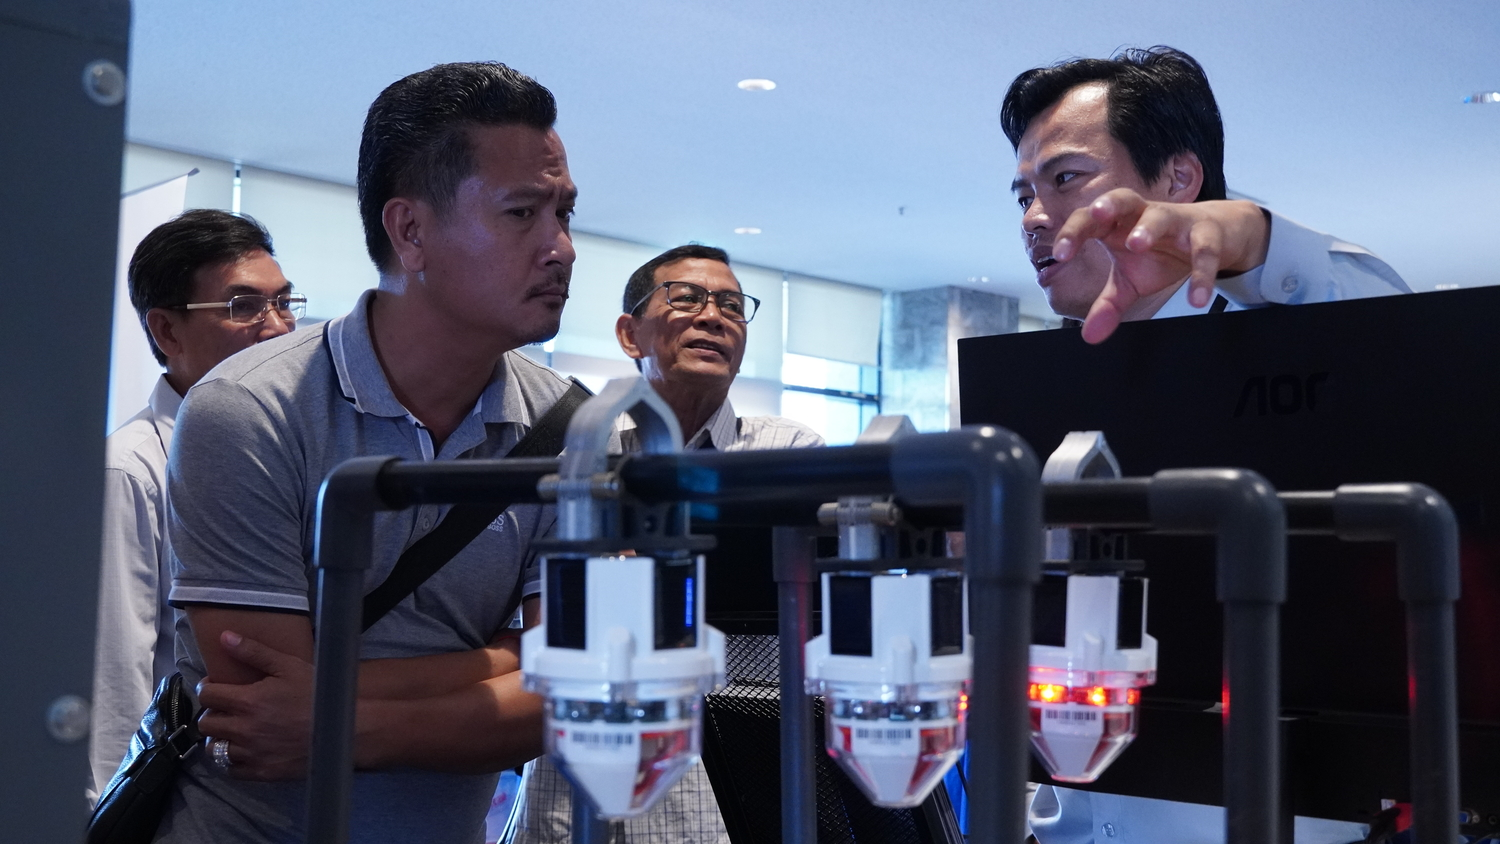 Sales manager informing booth visitor about DRC010 solution